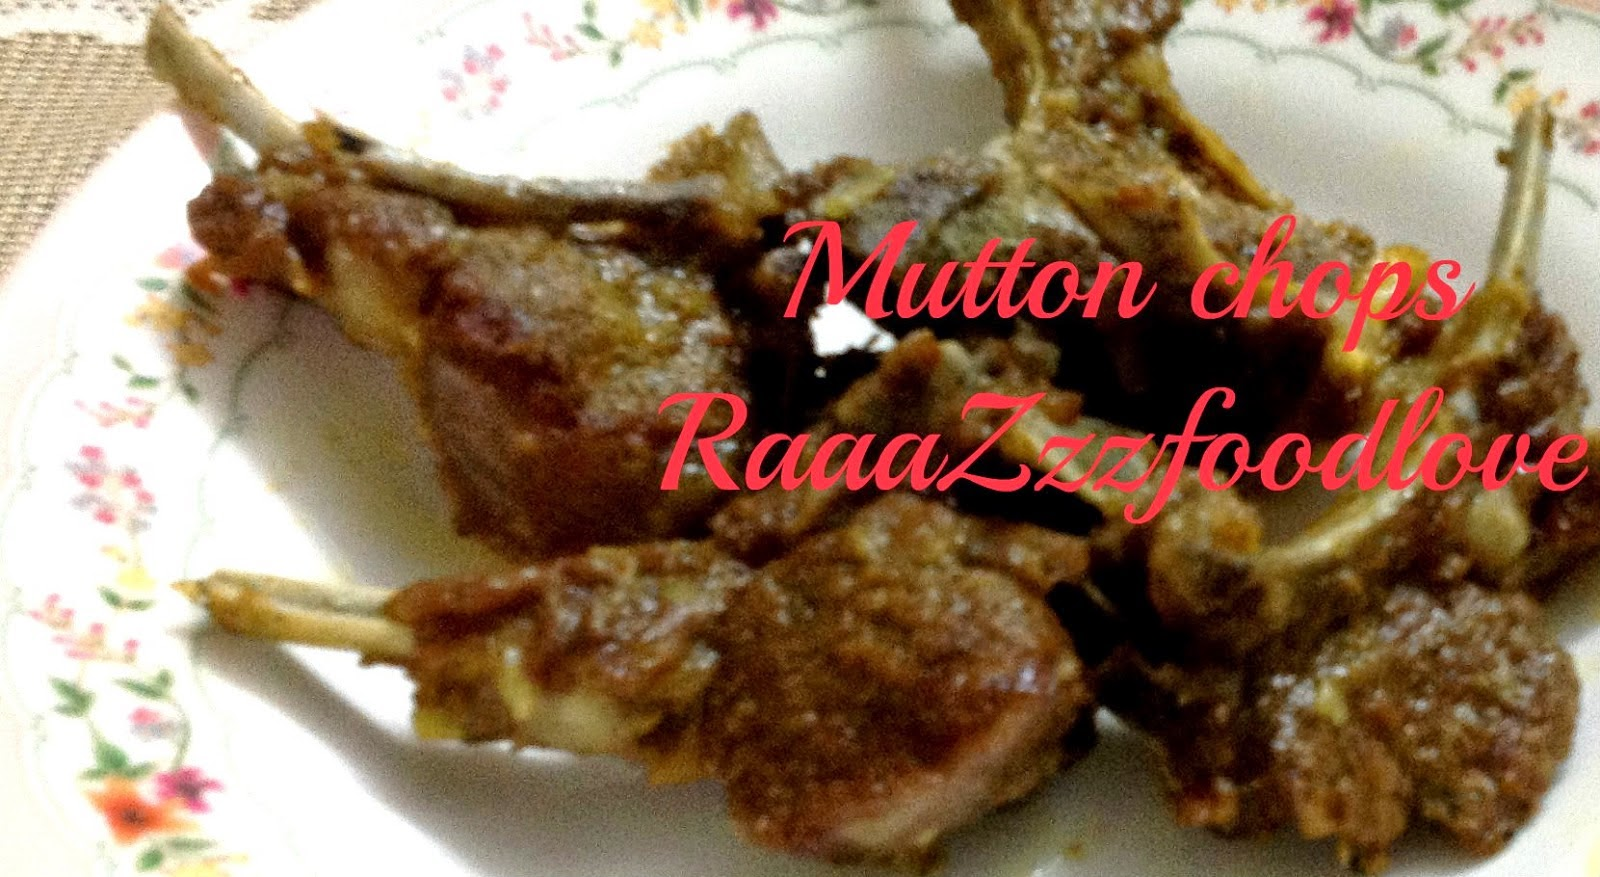 http://raaazzzfoodlove.blogspot.in/2013/05/mutton-chops.html